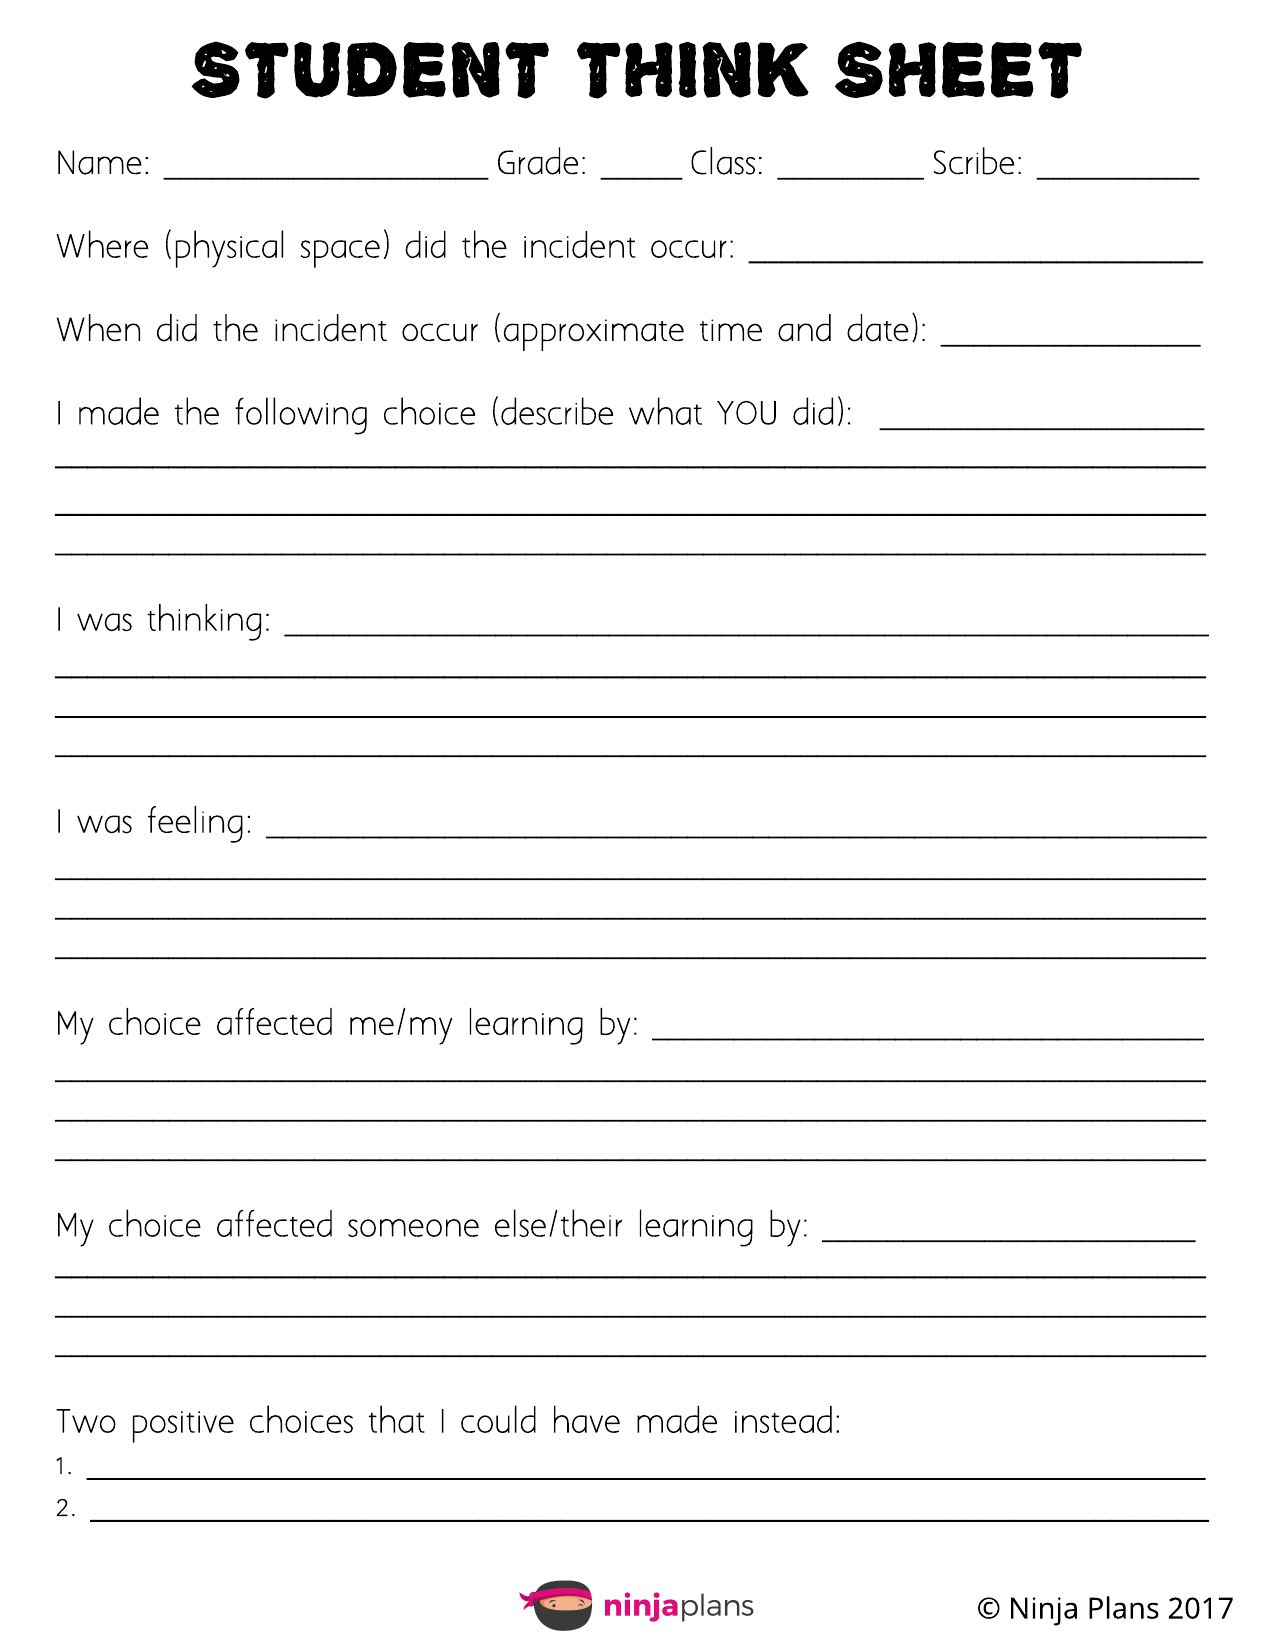 Student Think Sheet Resource Preview